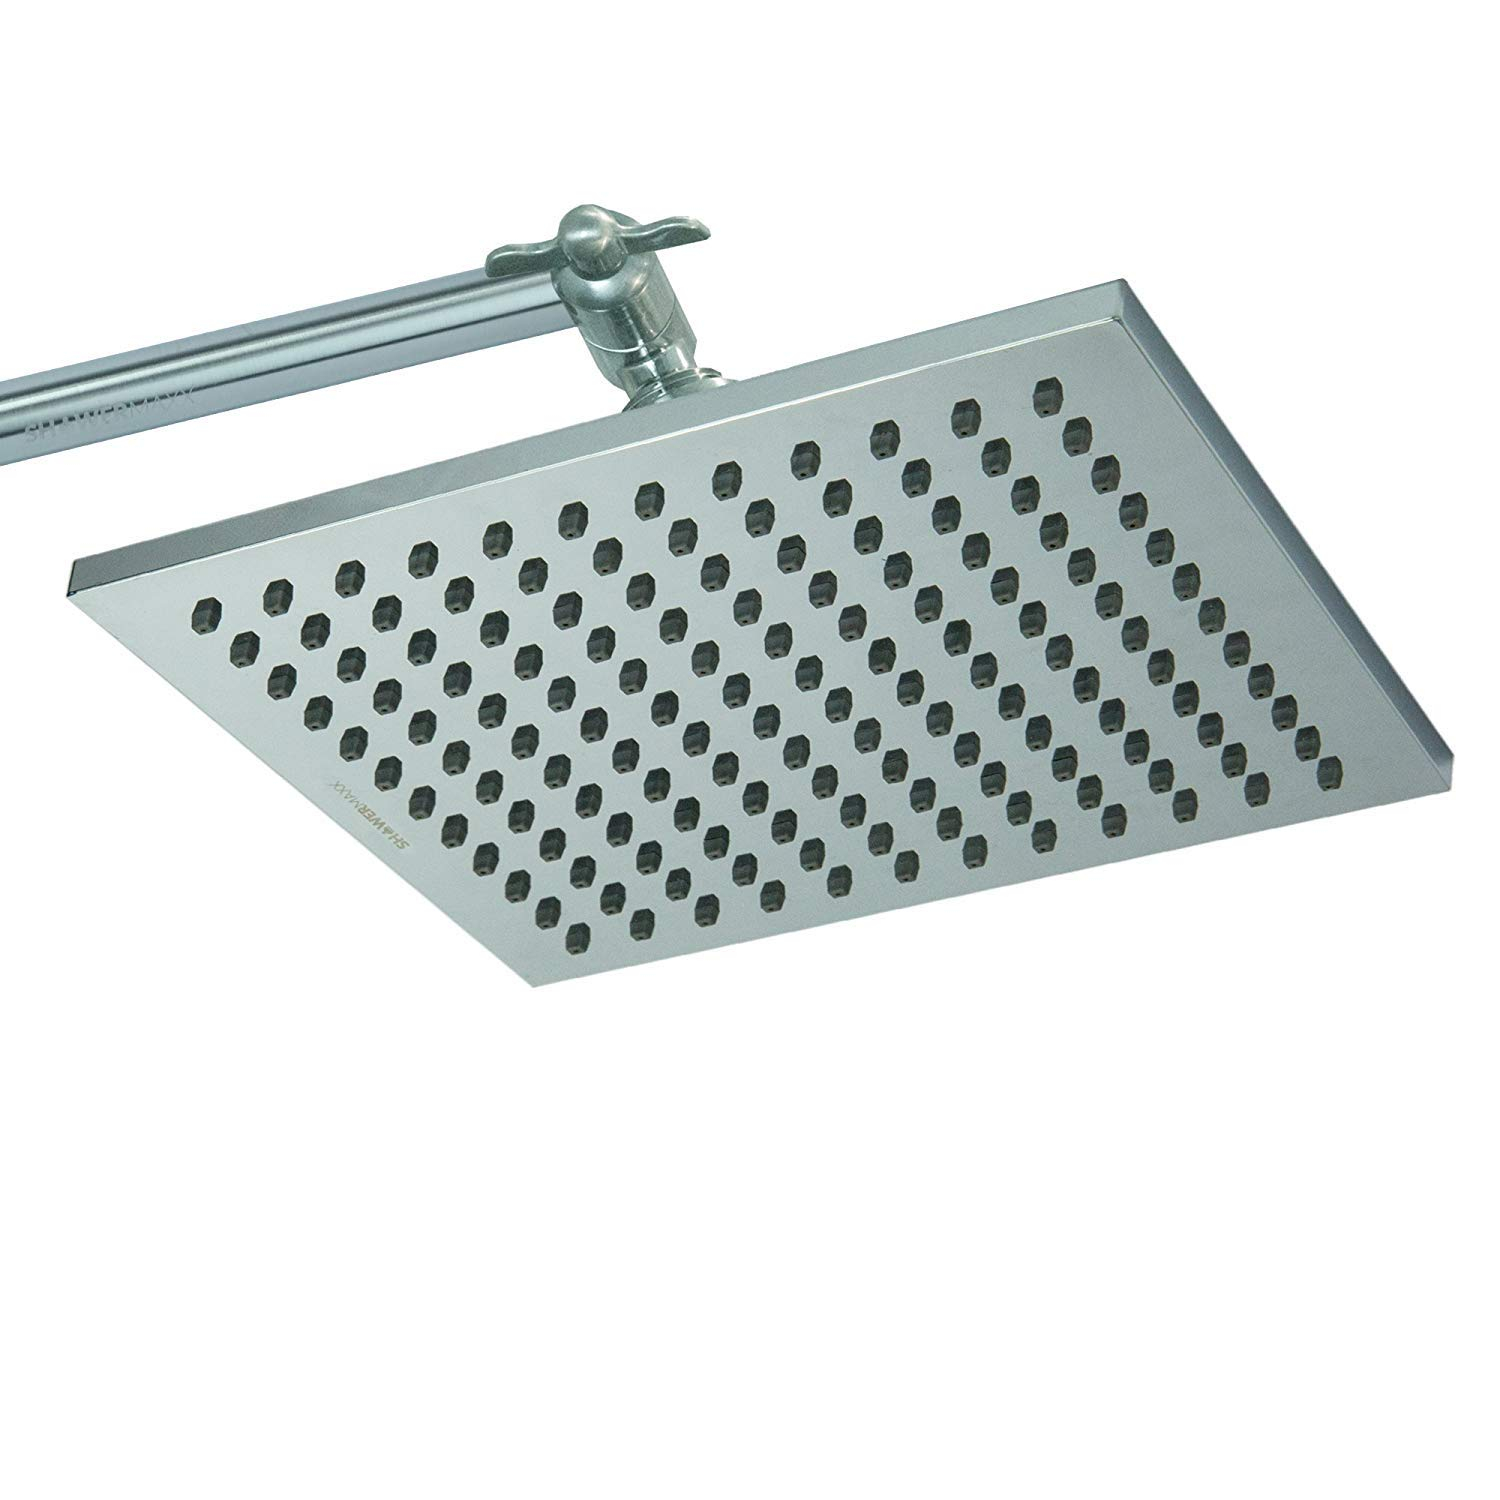 ShowerMaxx | Premium 8 inch Square High Pressure Luxury Spa Rainfall Shower Head- Removable Restrictor for Waterfall Rainshower- Self Cleaning High Flow Nozzles – Brushed Nickel Finish Rain Showerhead